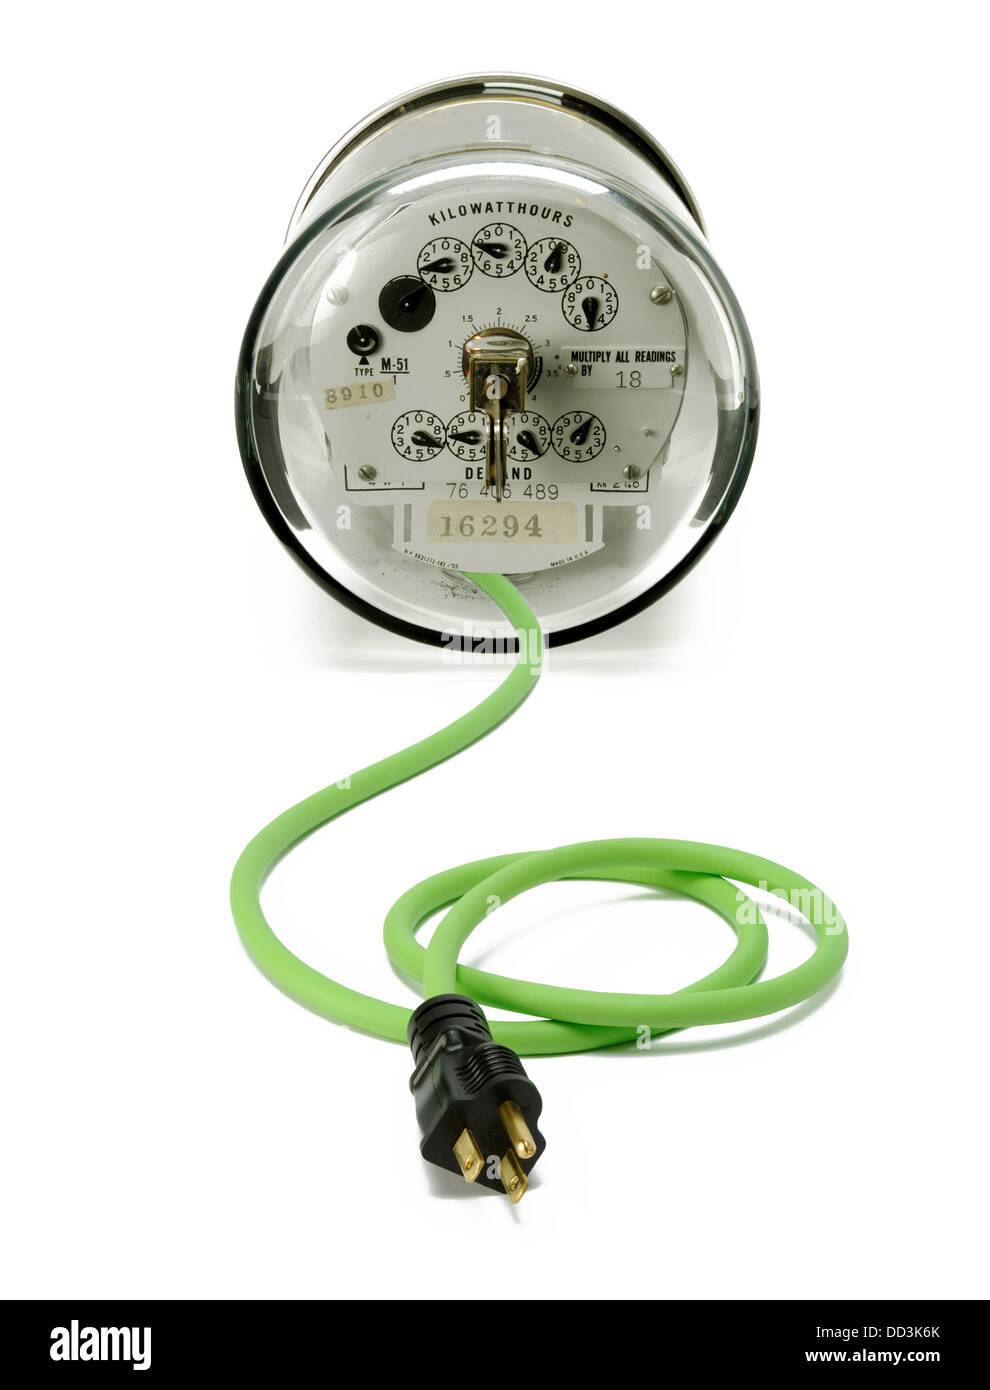 An electrical meter with a green cord and plug - Stock Image